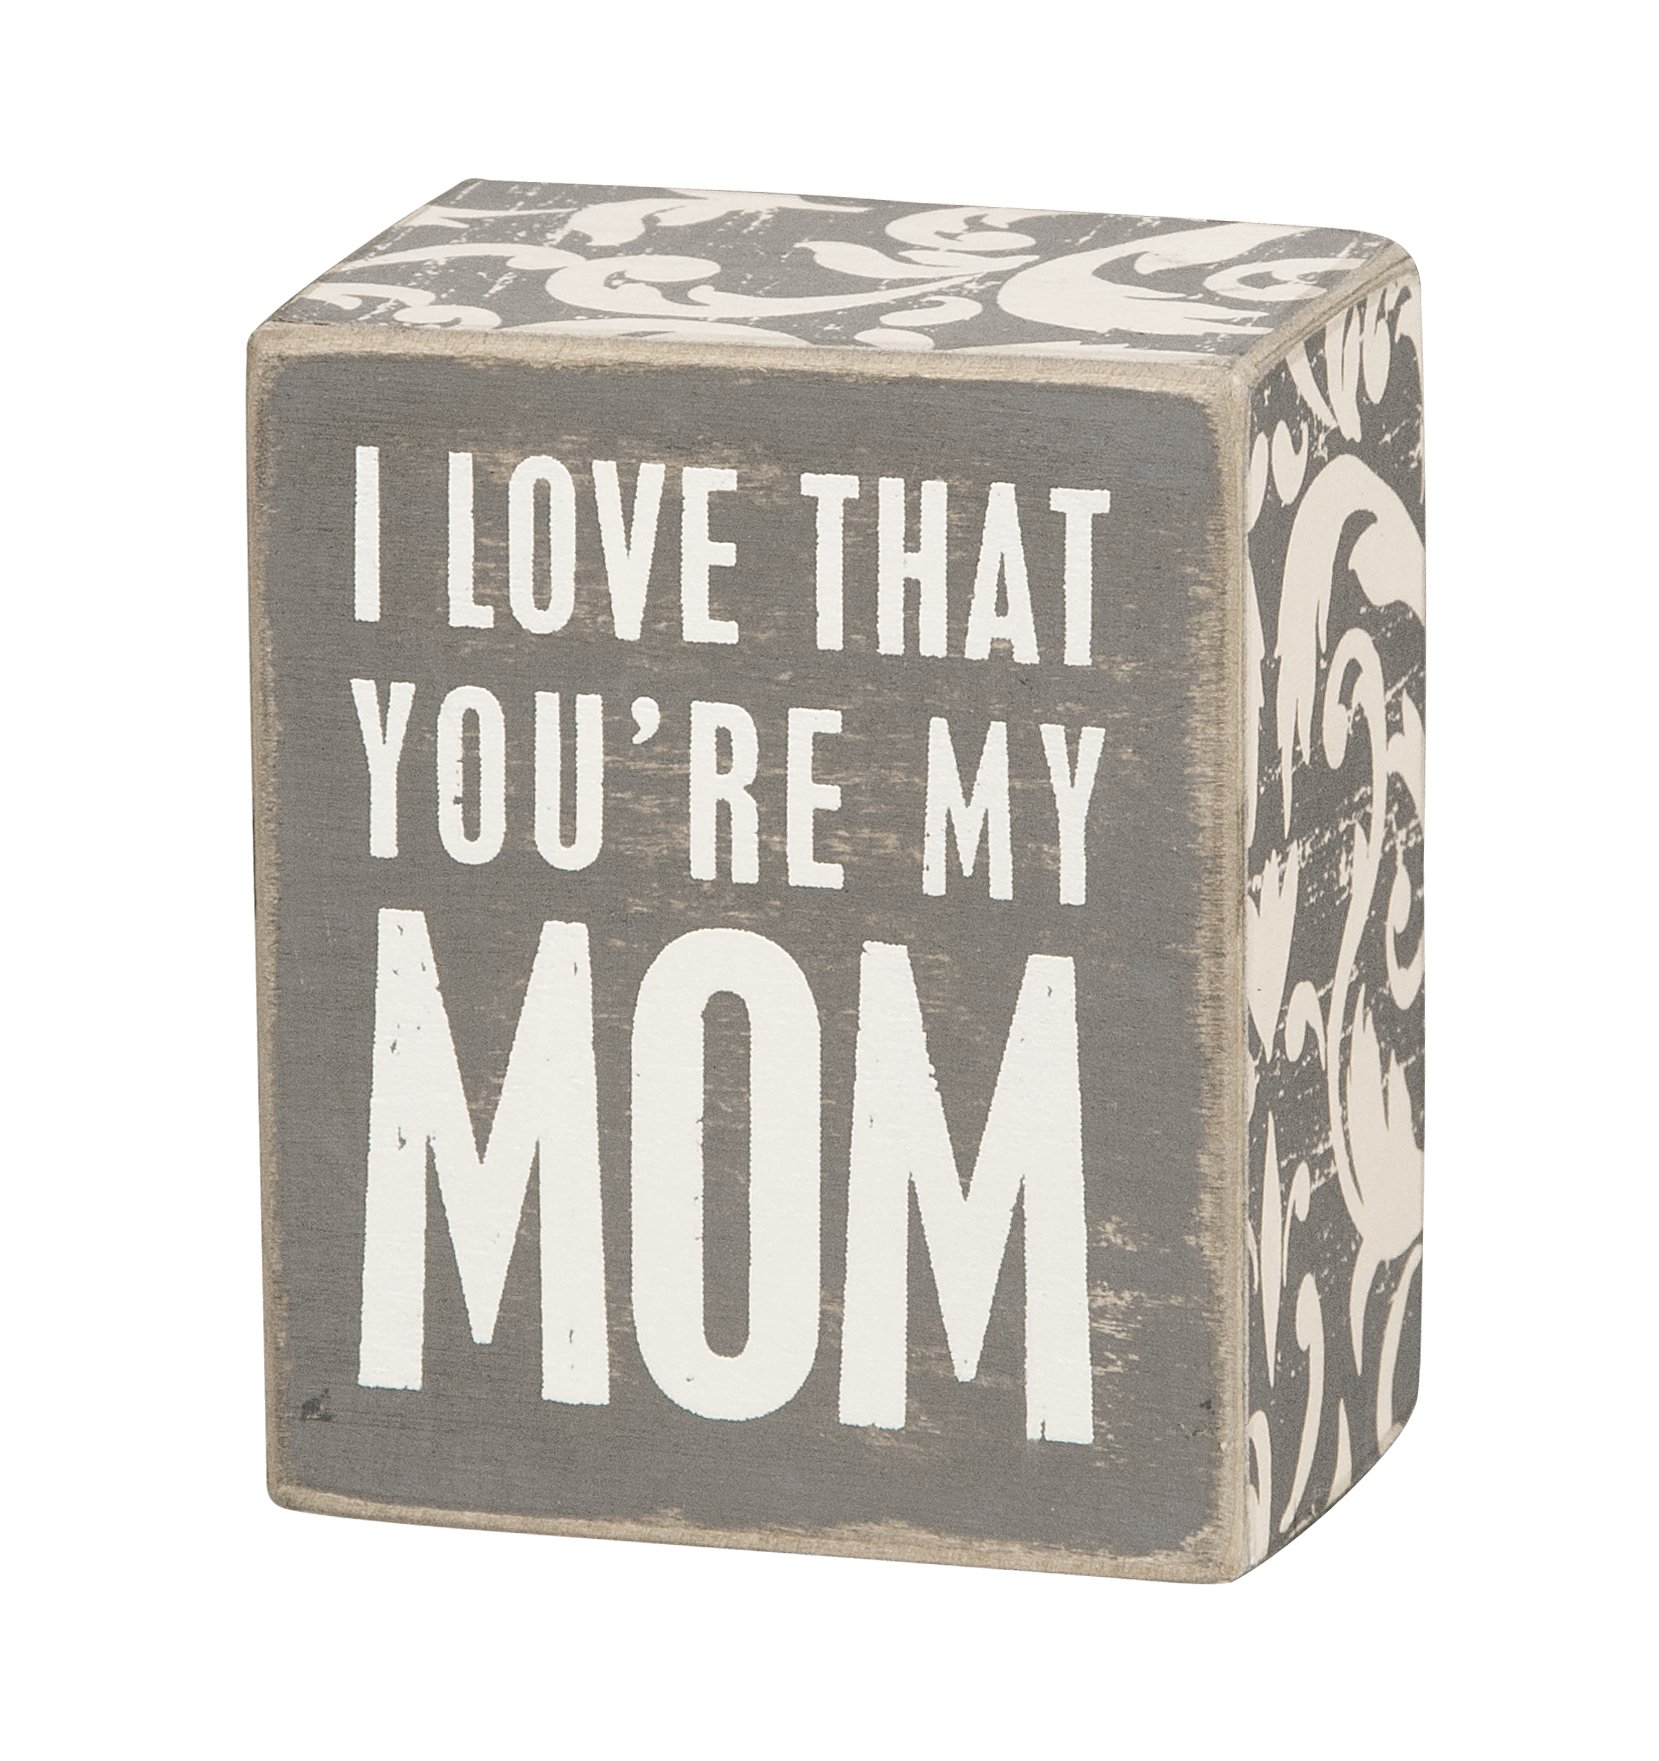 Primitives by Kathy Family, Box Sign, Floral - I Love That You're My Mom